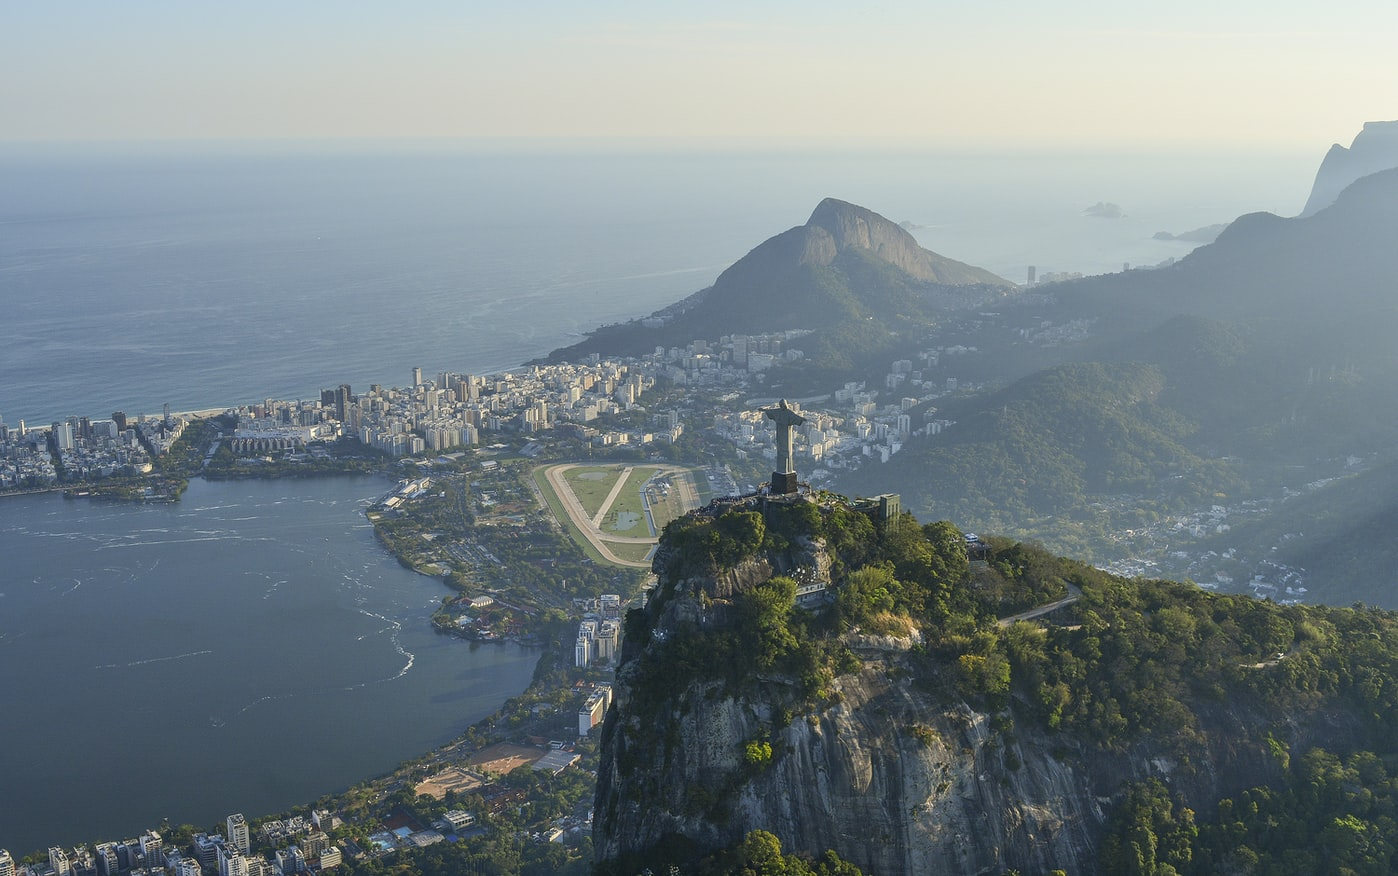 What is the capital of Brazil